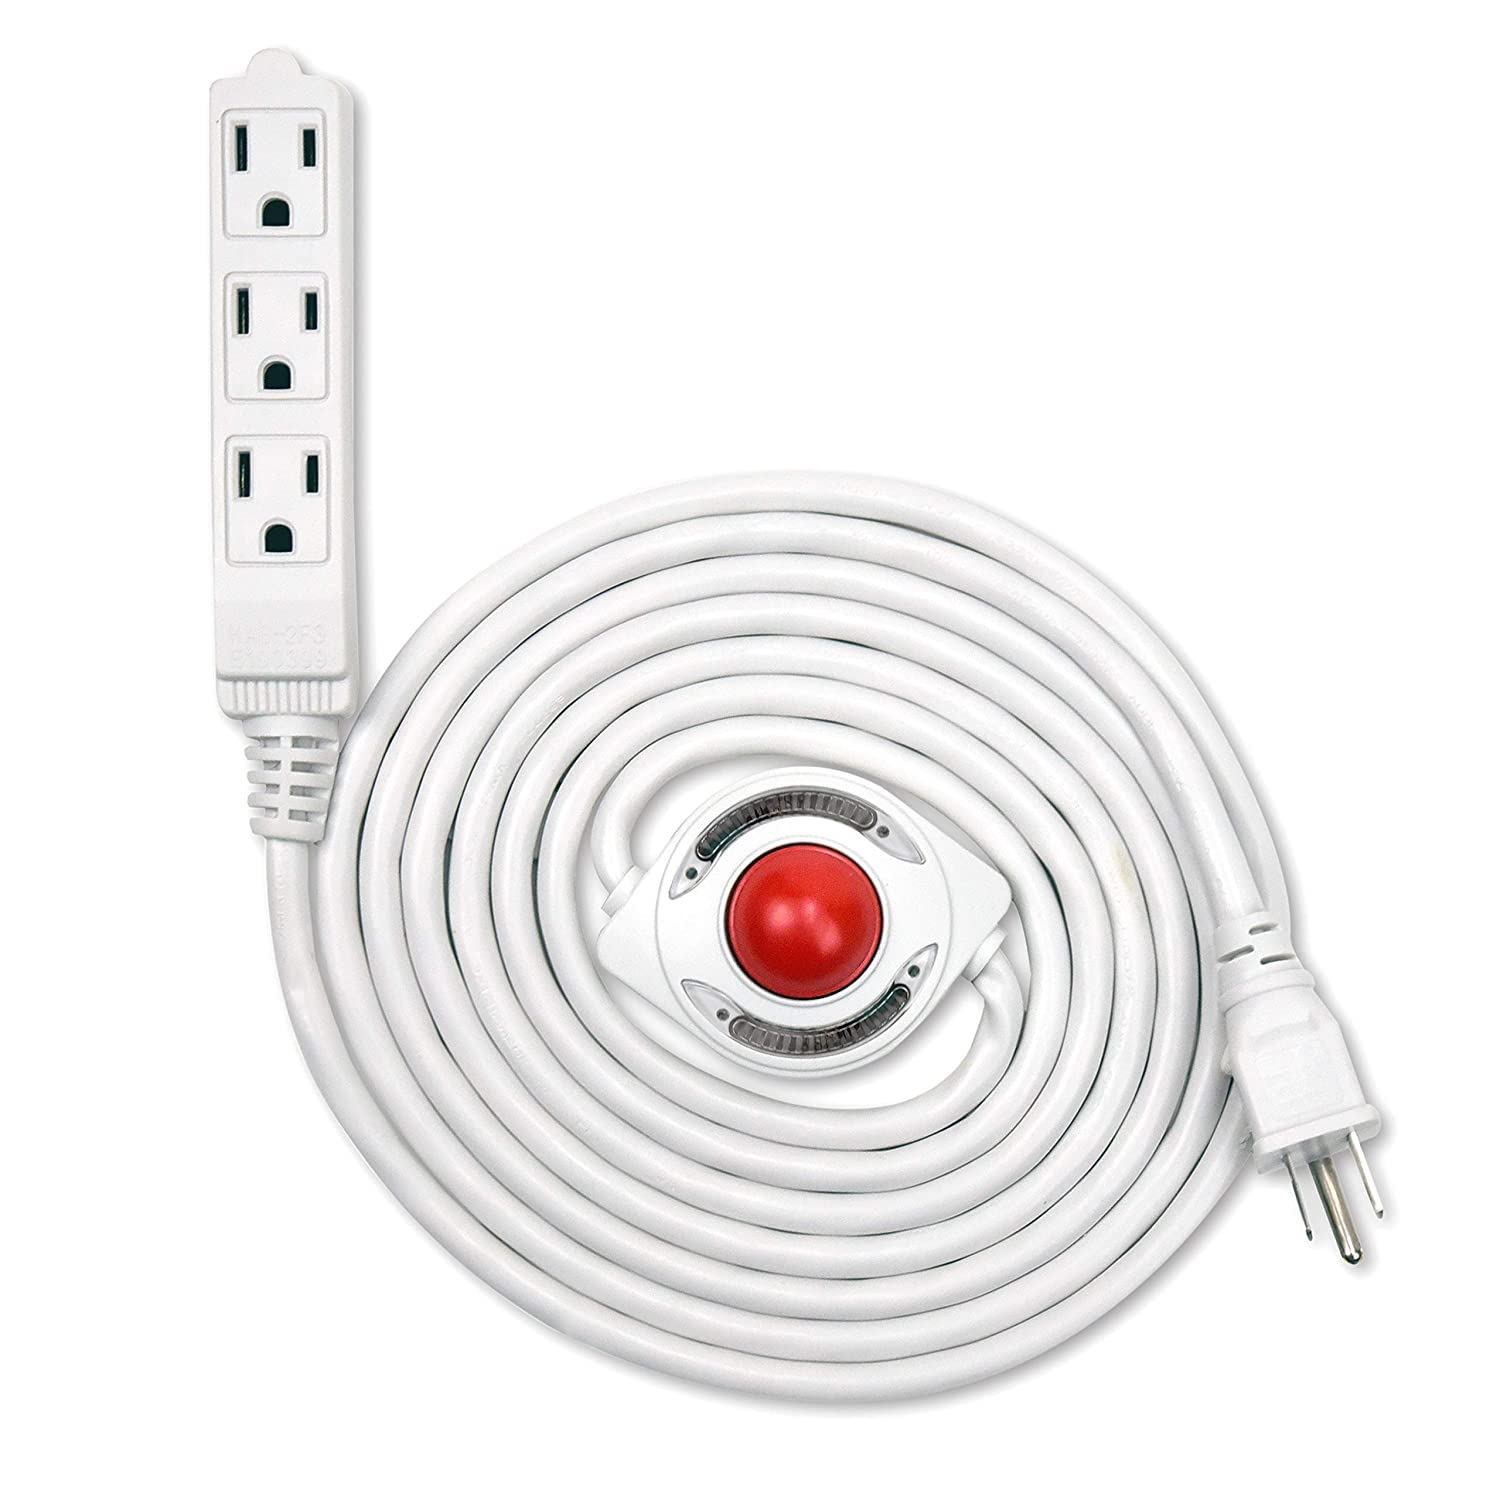 NEW! Electes 10 Feet 3 Grounded Outlets Extension Cord with Foot Switch and Light Indicator, 16/3, White - UL Listed